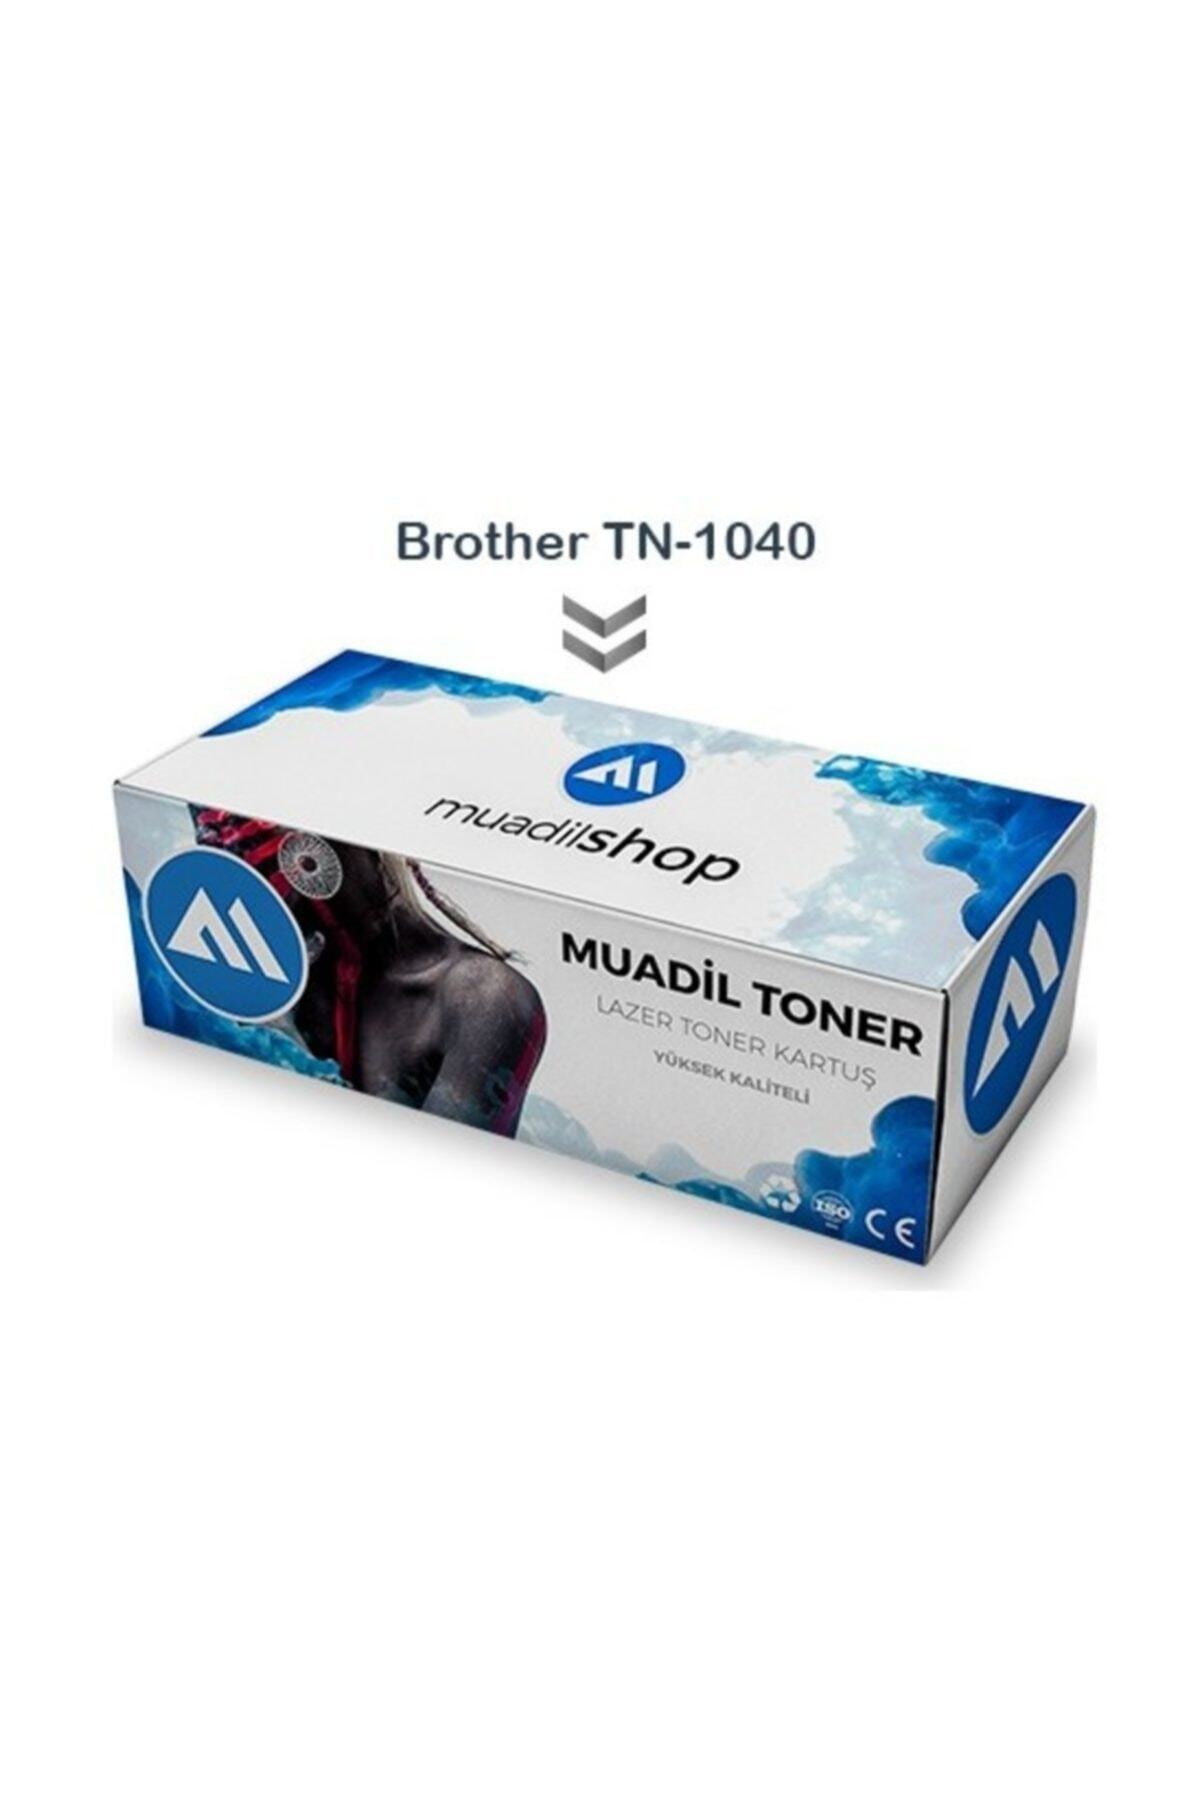 Brother Tn-1040 Muadil Toner - Dcp-1511/mfc-1811/hl-1111/hl-1211w 2